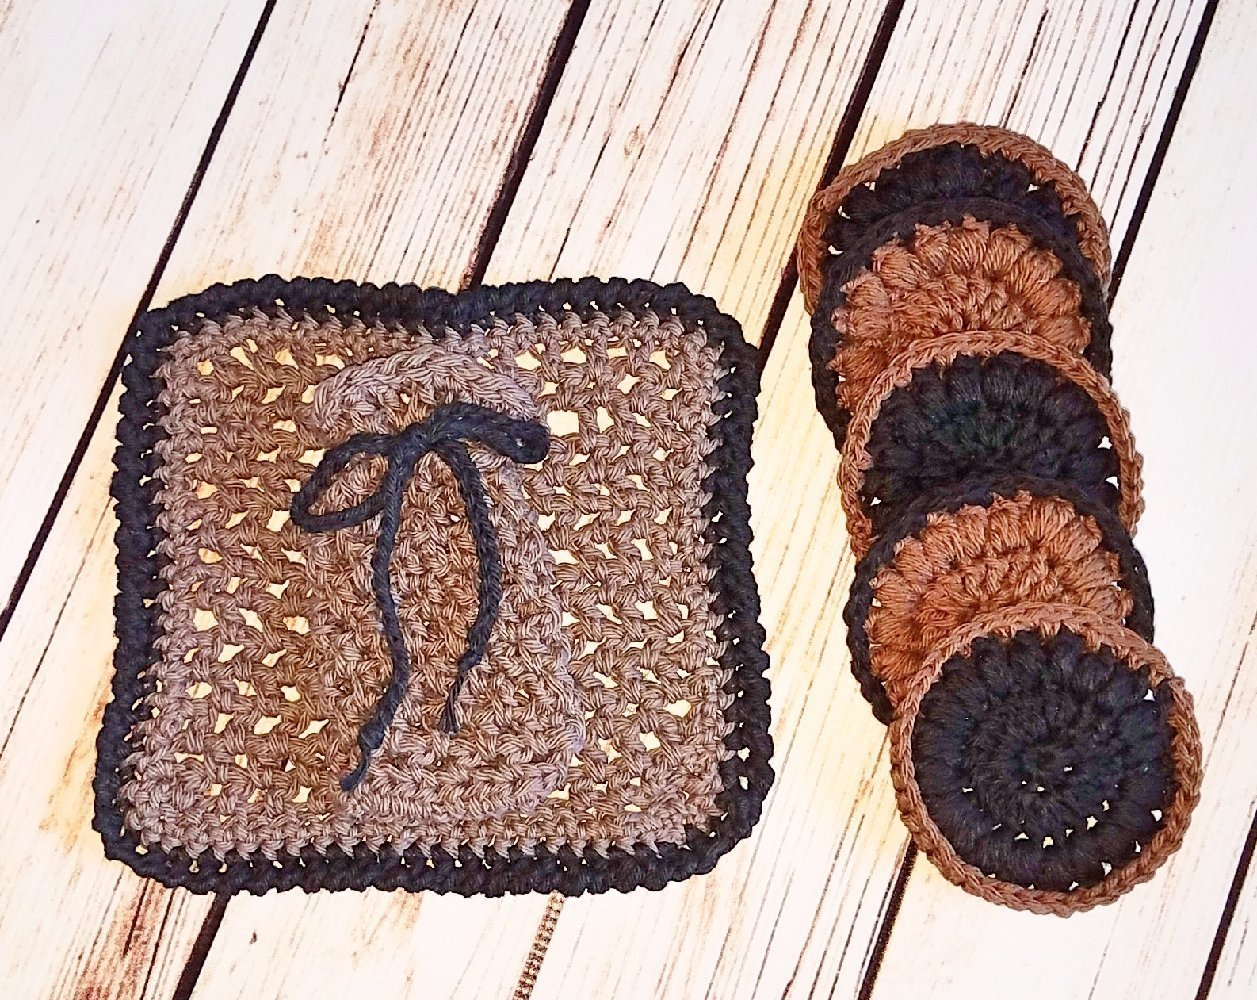 Manly Browns and Black Invigorating Face and Body Spa Accessories by Cloud 9 Crochet